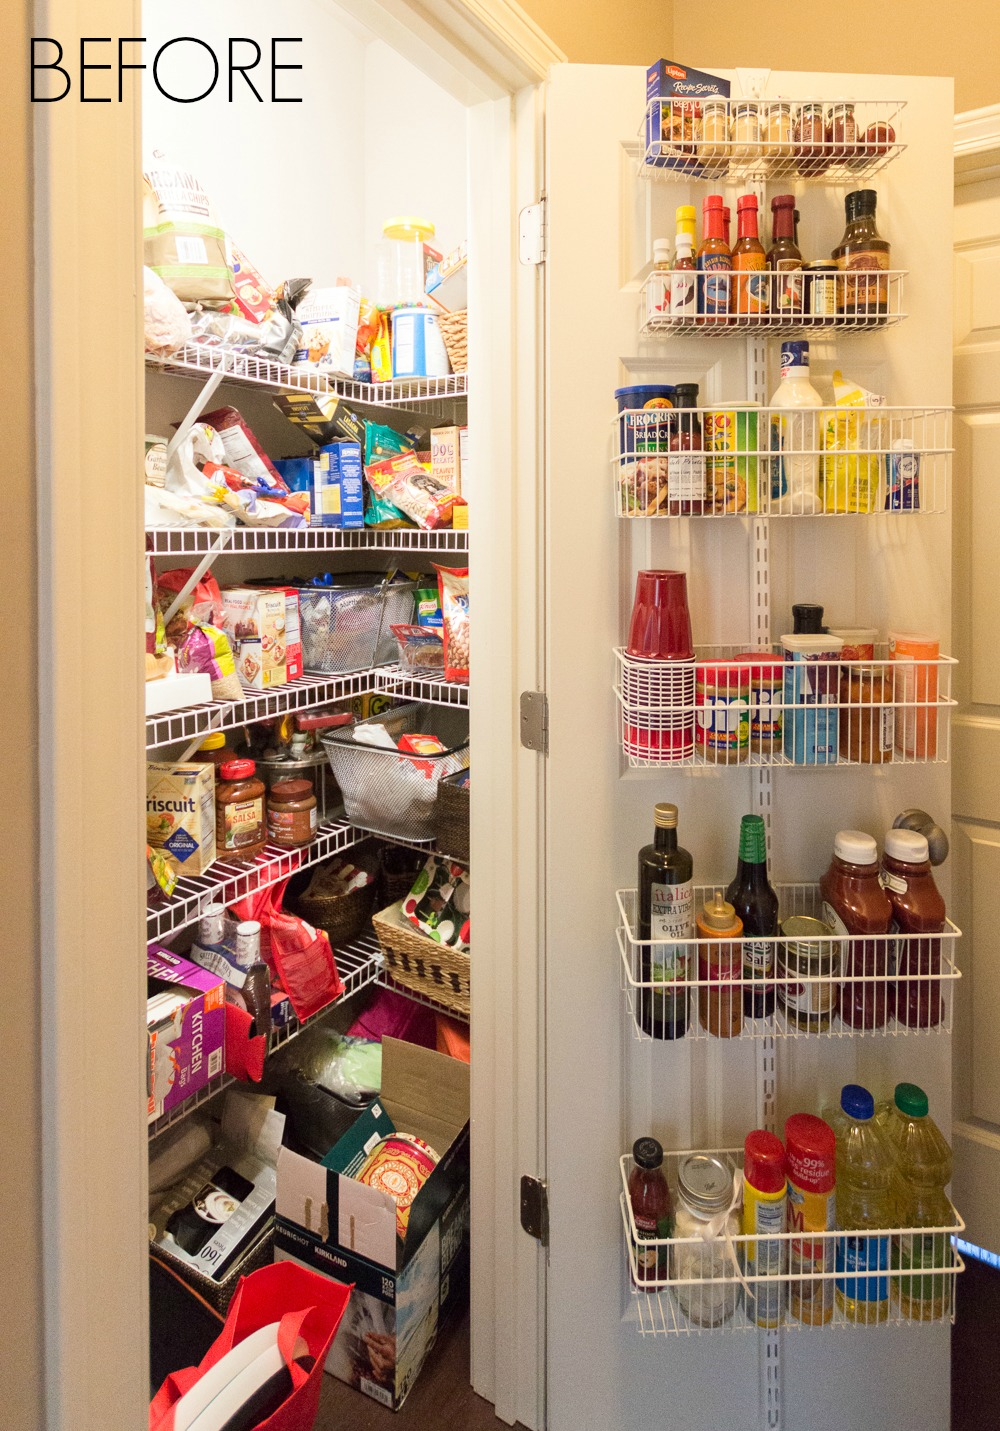 Cluttered Organized pantry before